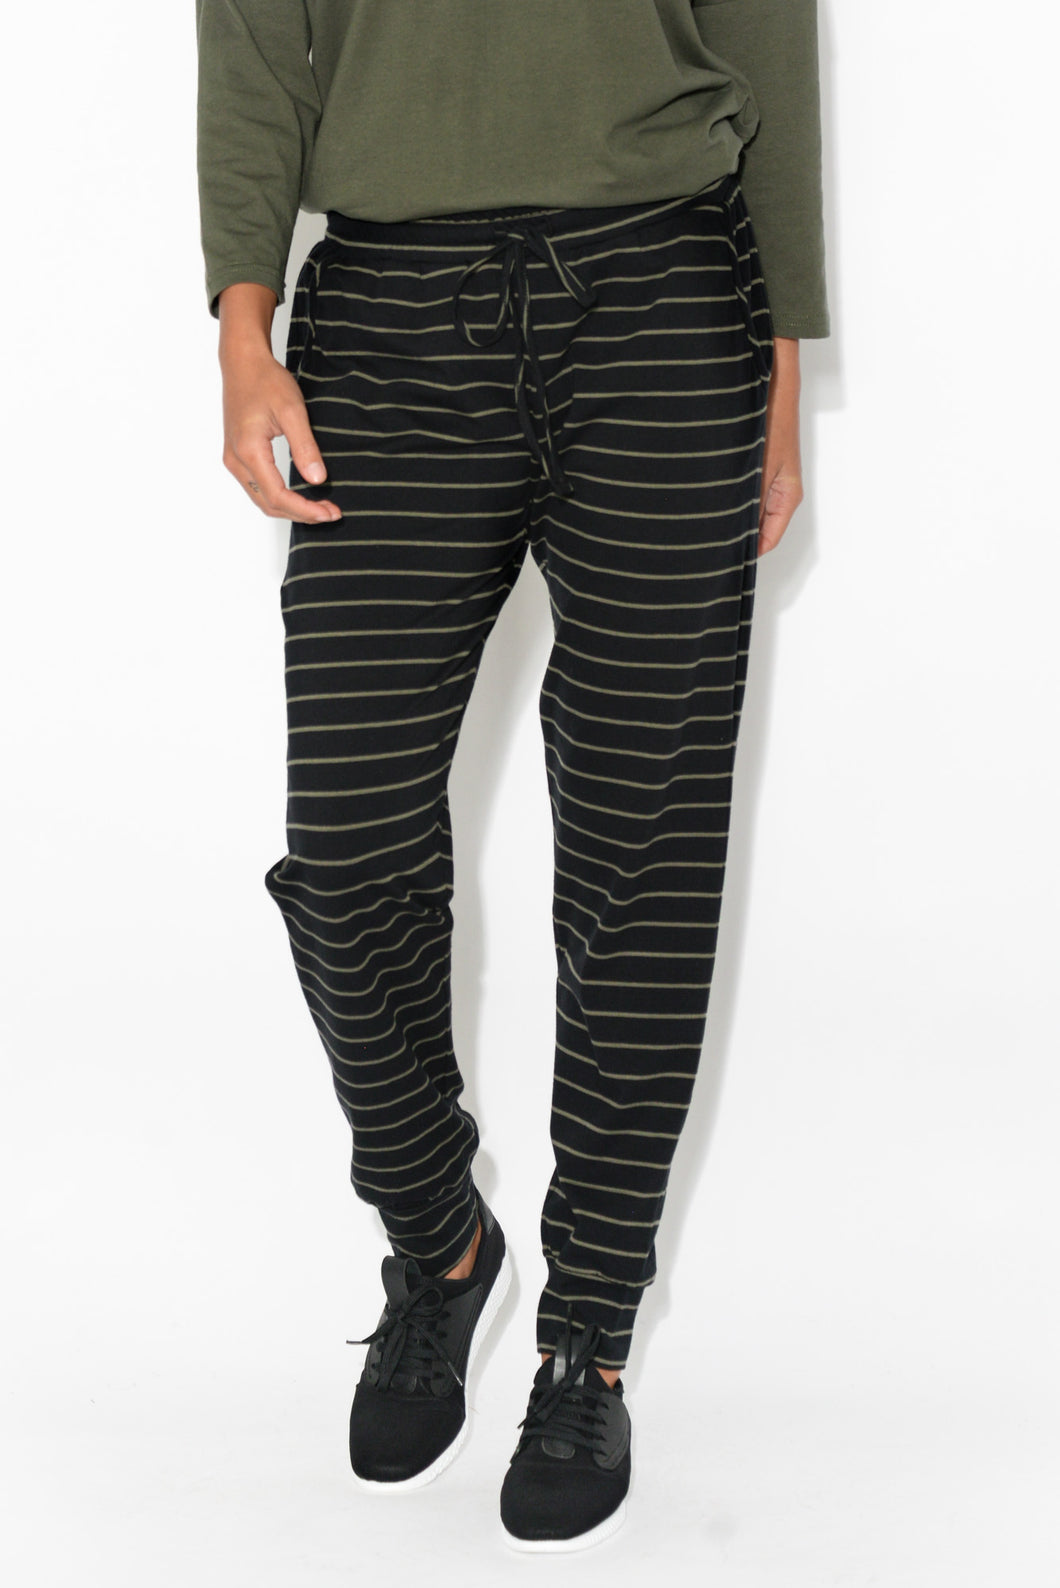 Khaki Stripe Everyday Pant